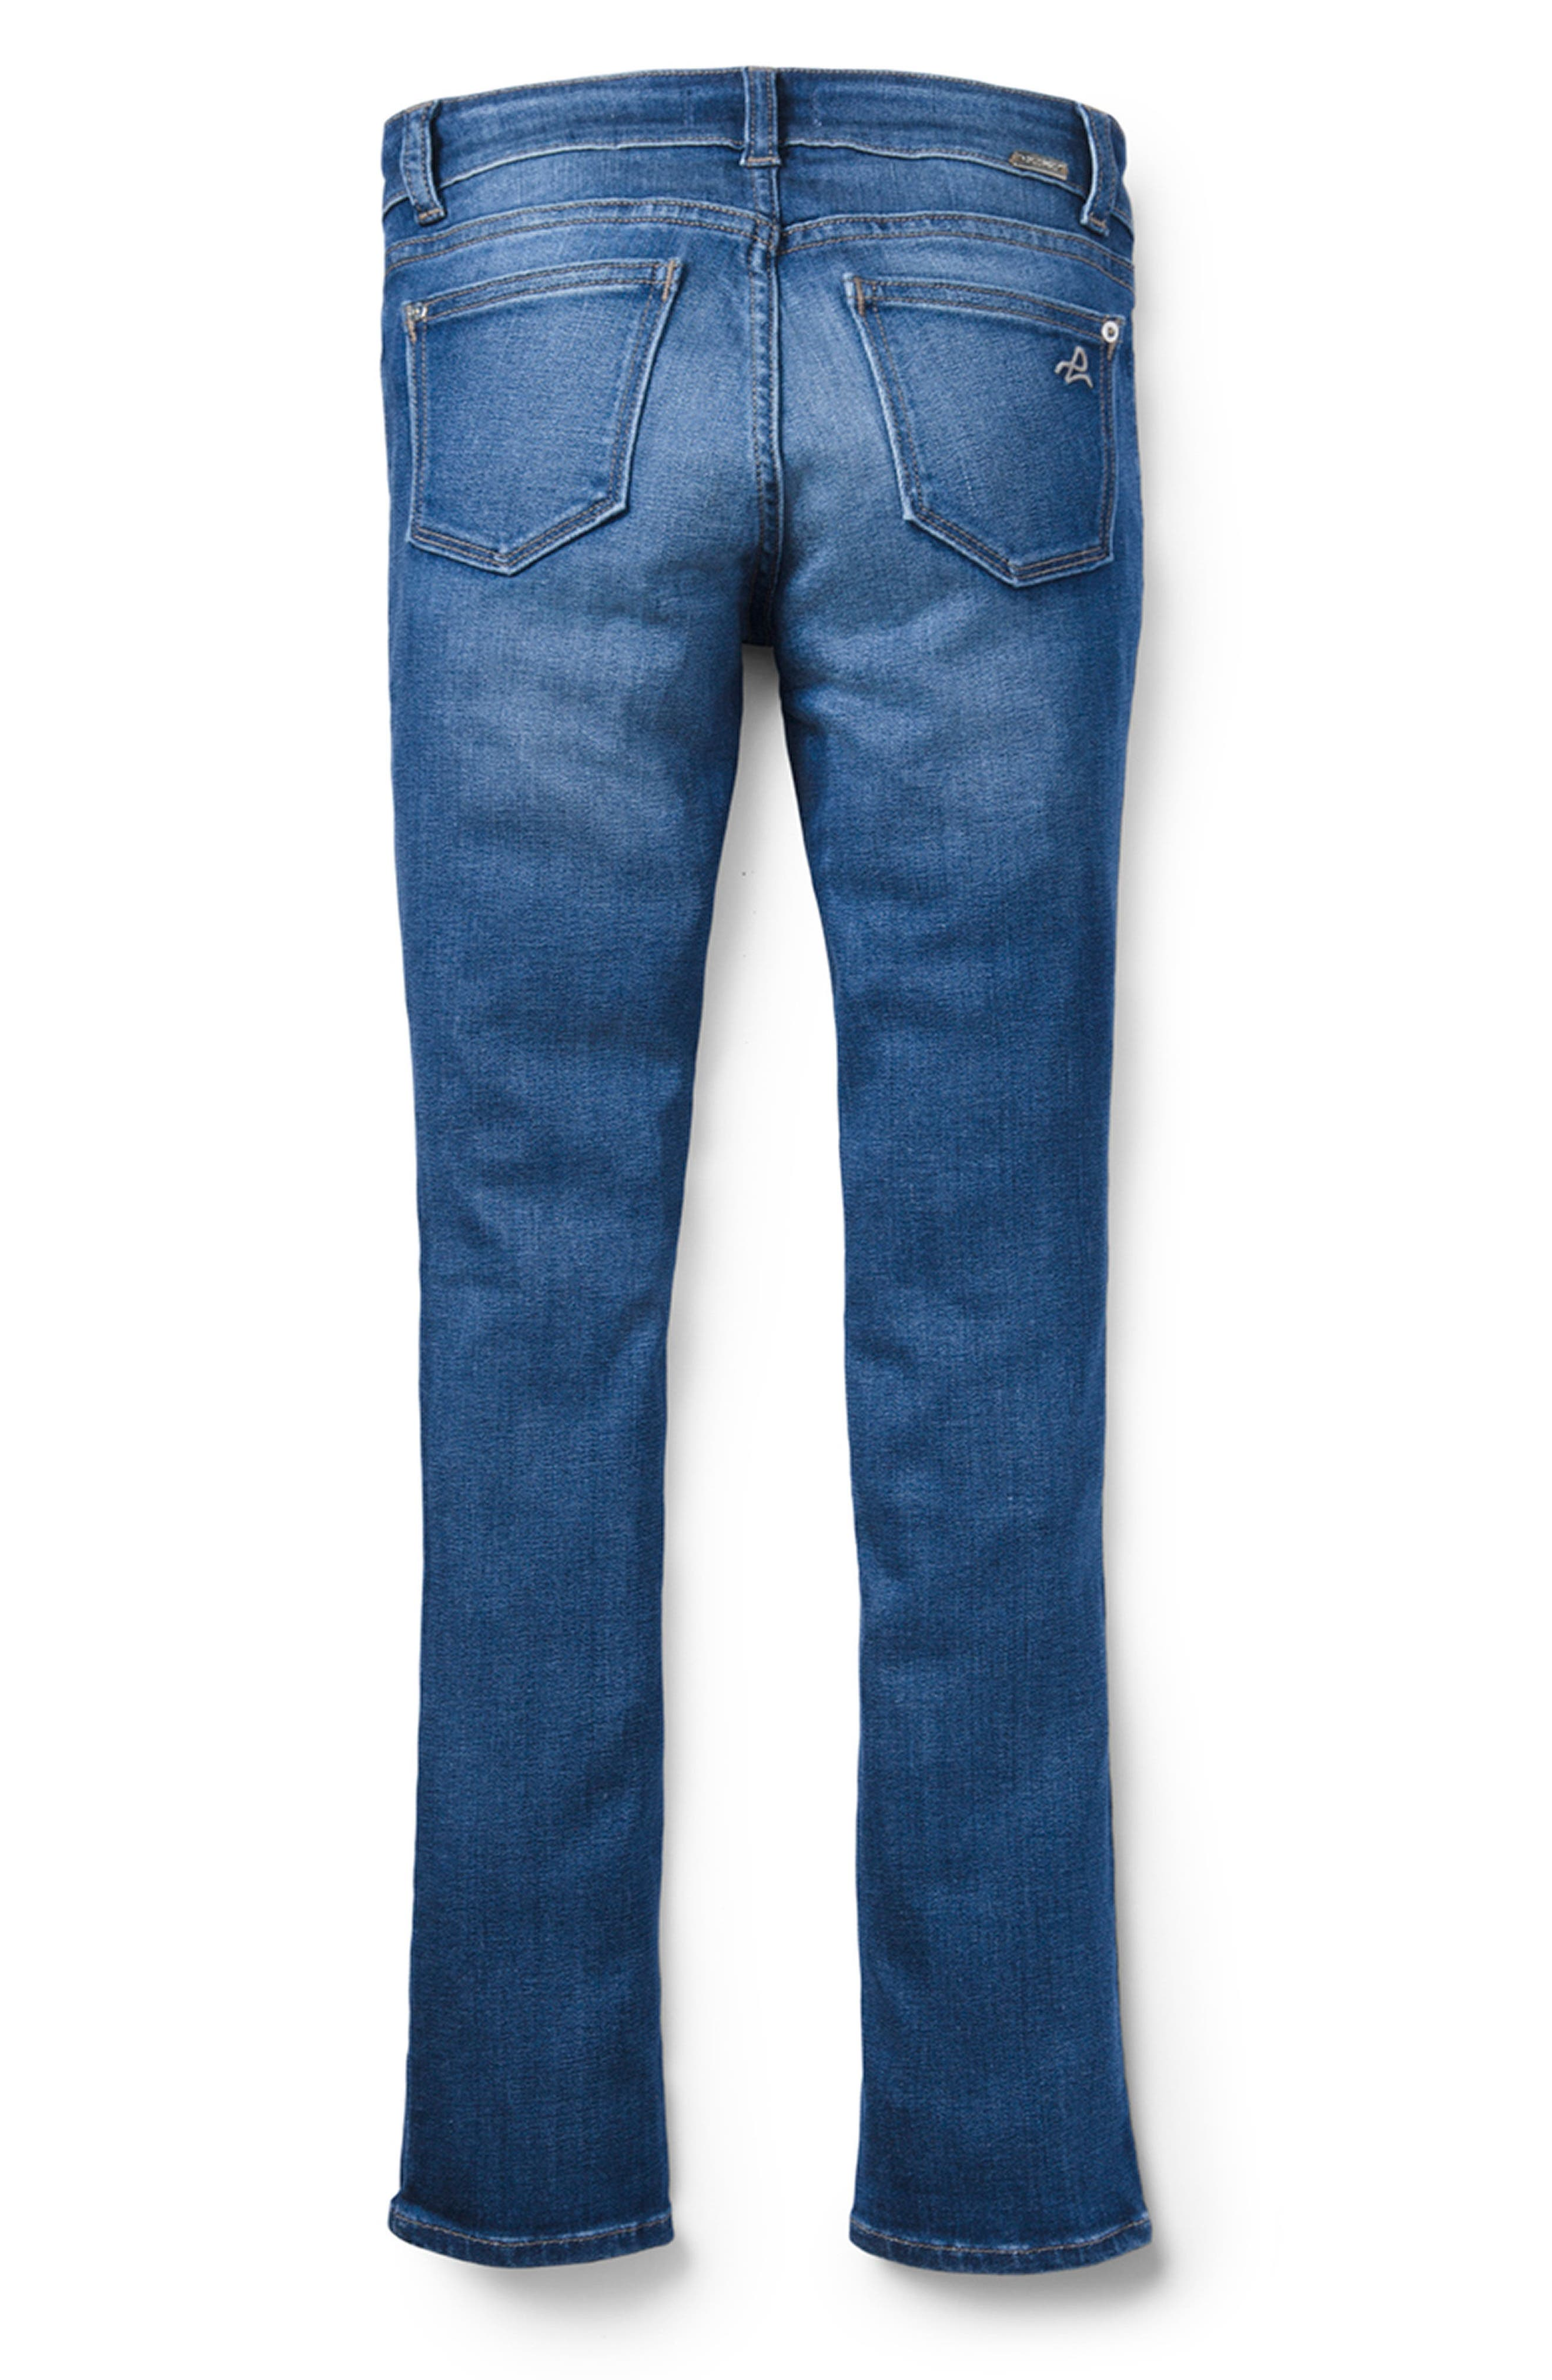 Stretch Skinny Jeans,                             Main thumbnail 1, color,                             BLUE